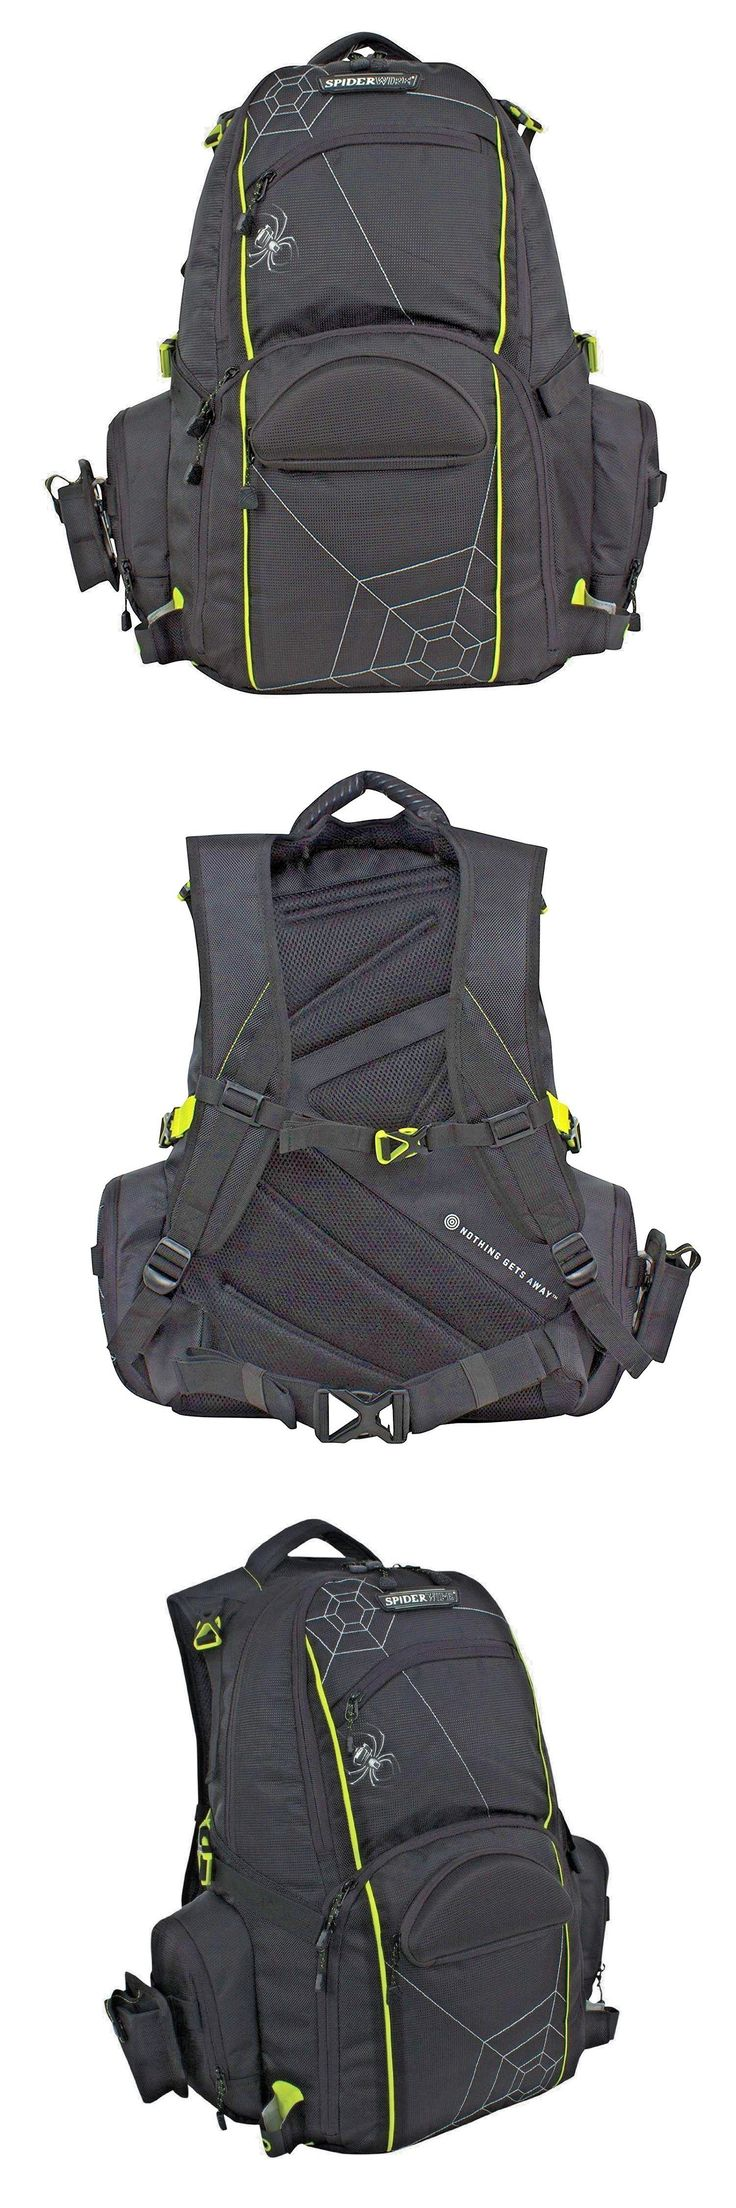 17 best ideas about fishing backpack on pinterest for Spiderwire fishing backpack